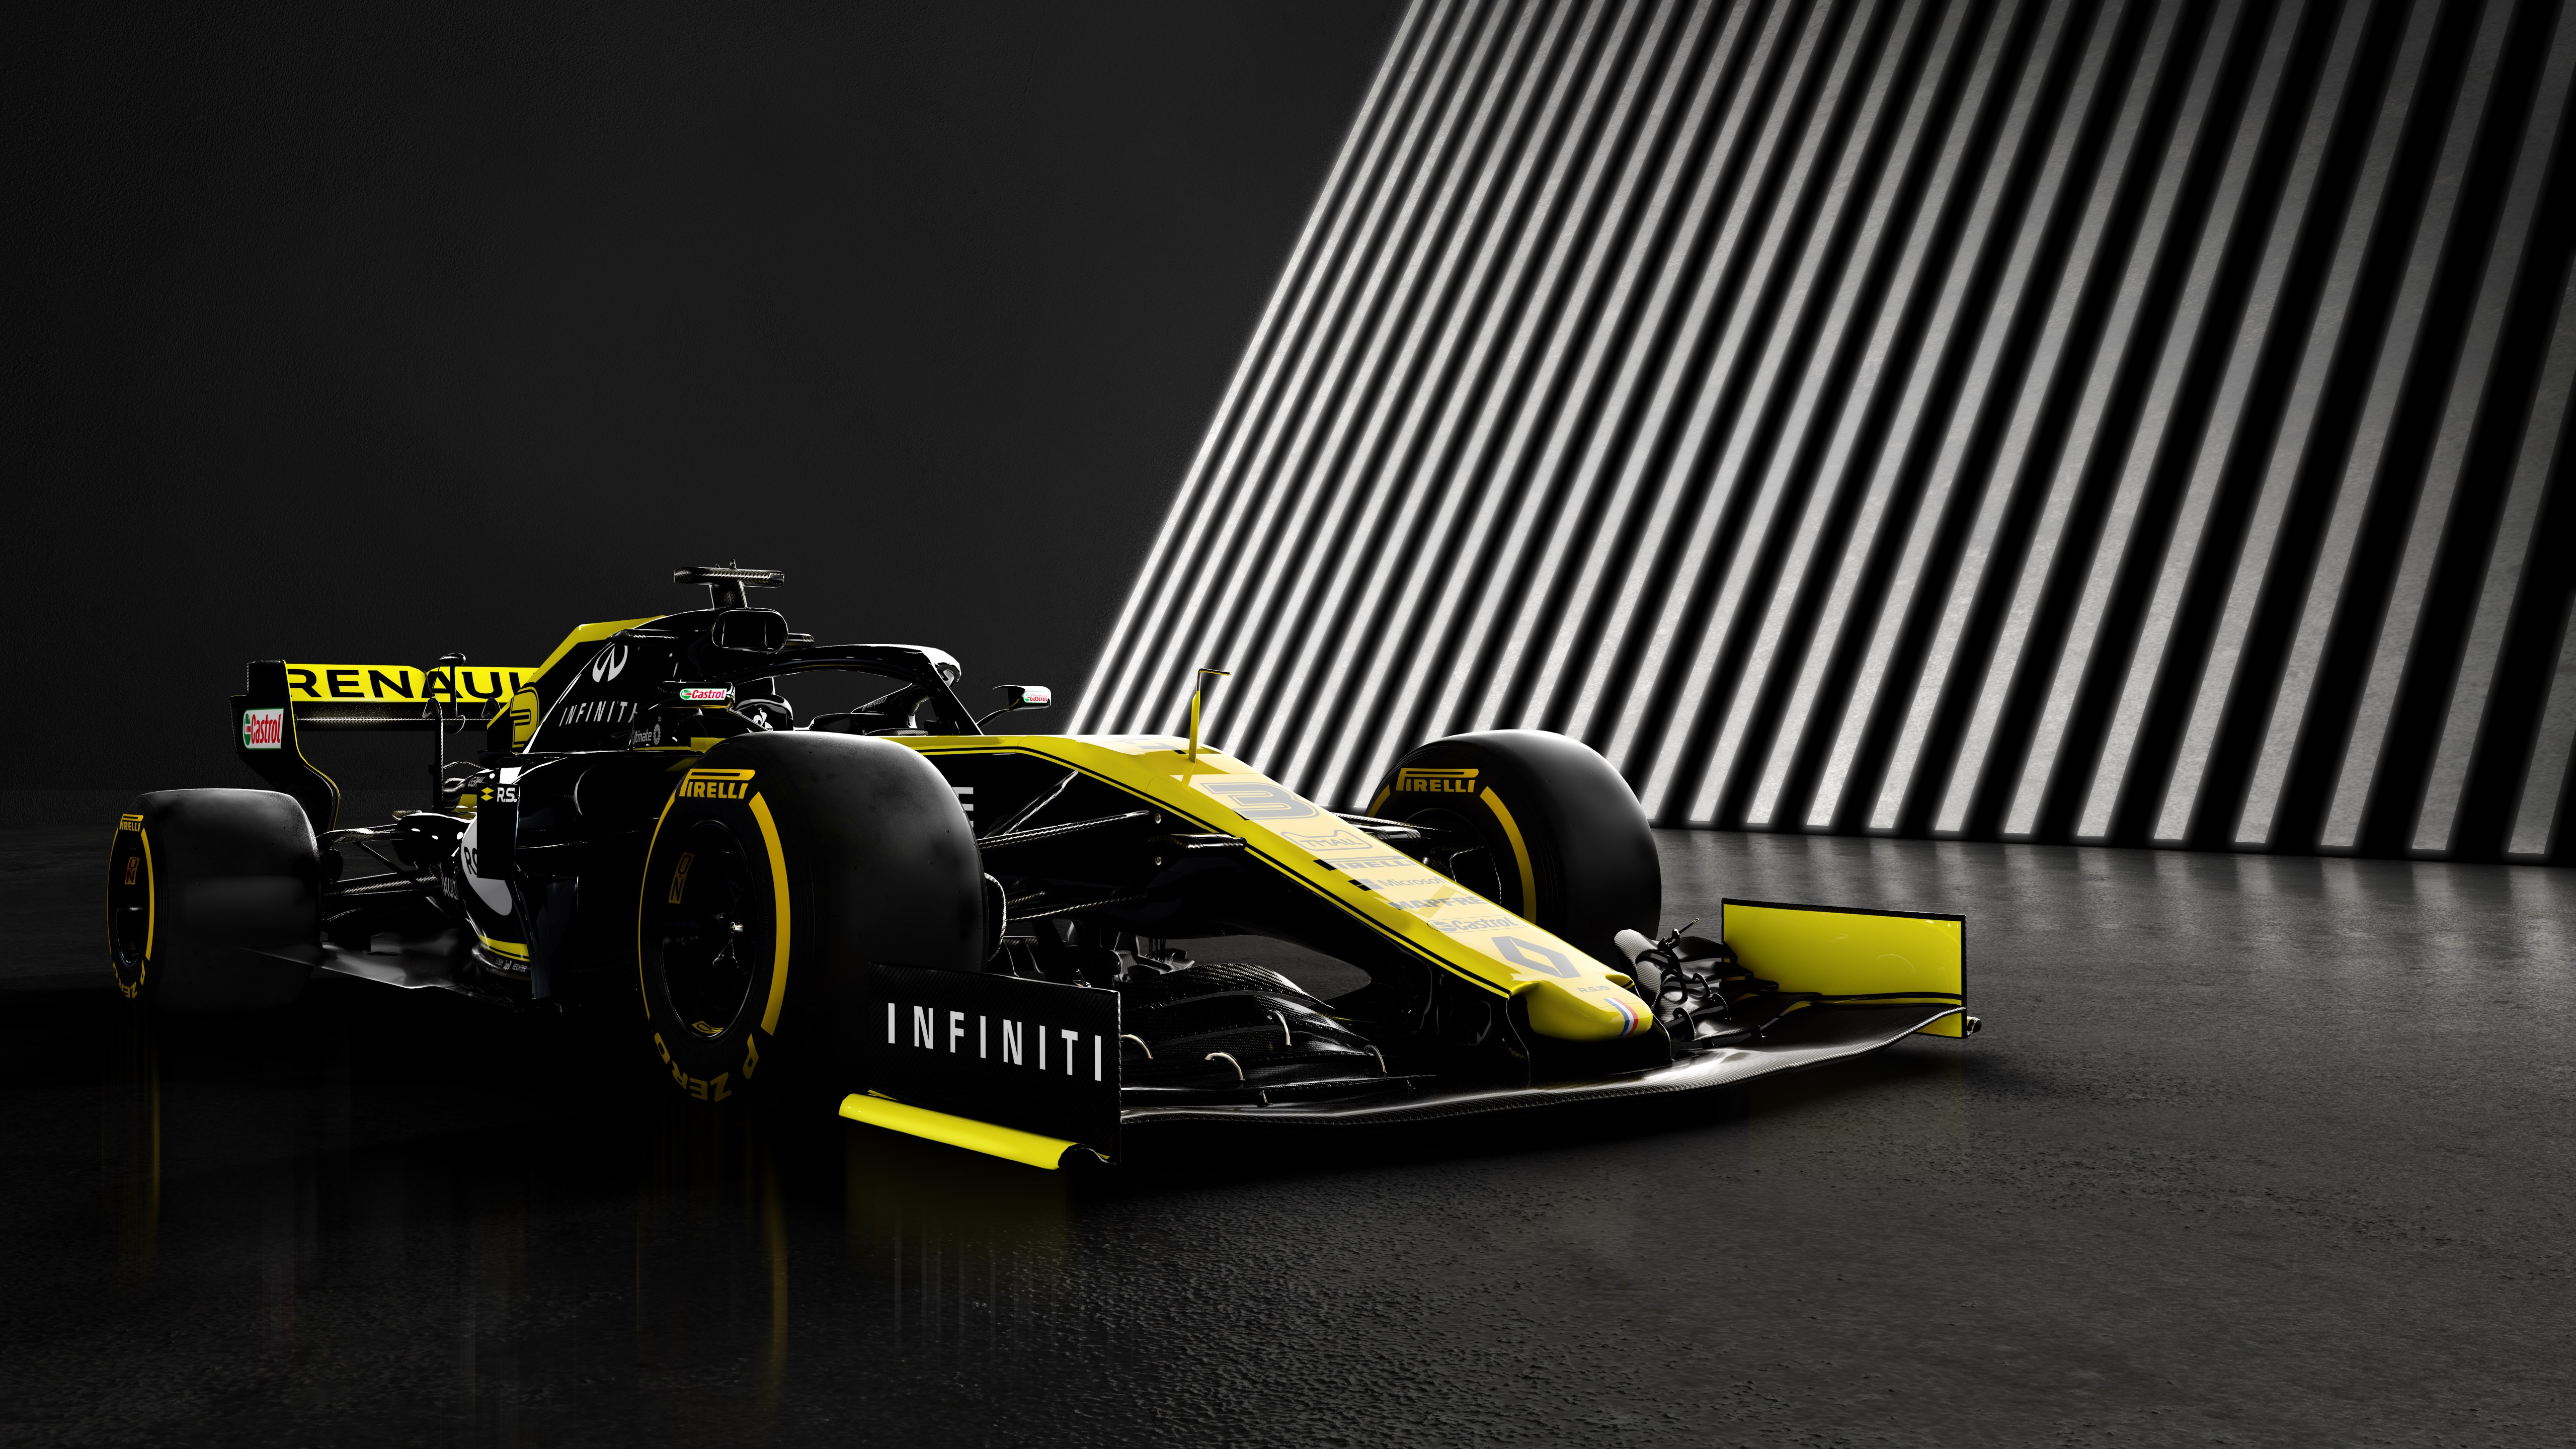 Renault RS19 5k Retina Ultra HD Wallpaper Background Image 5120x2880